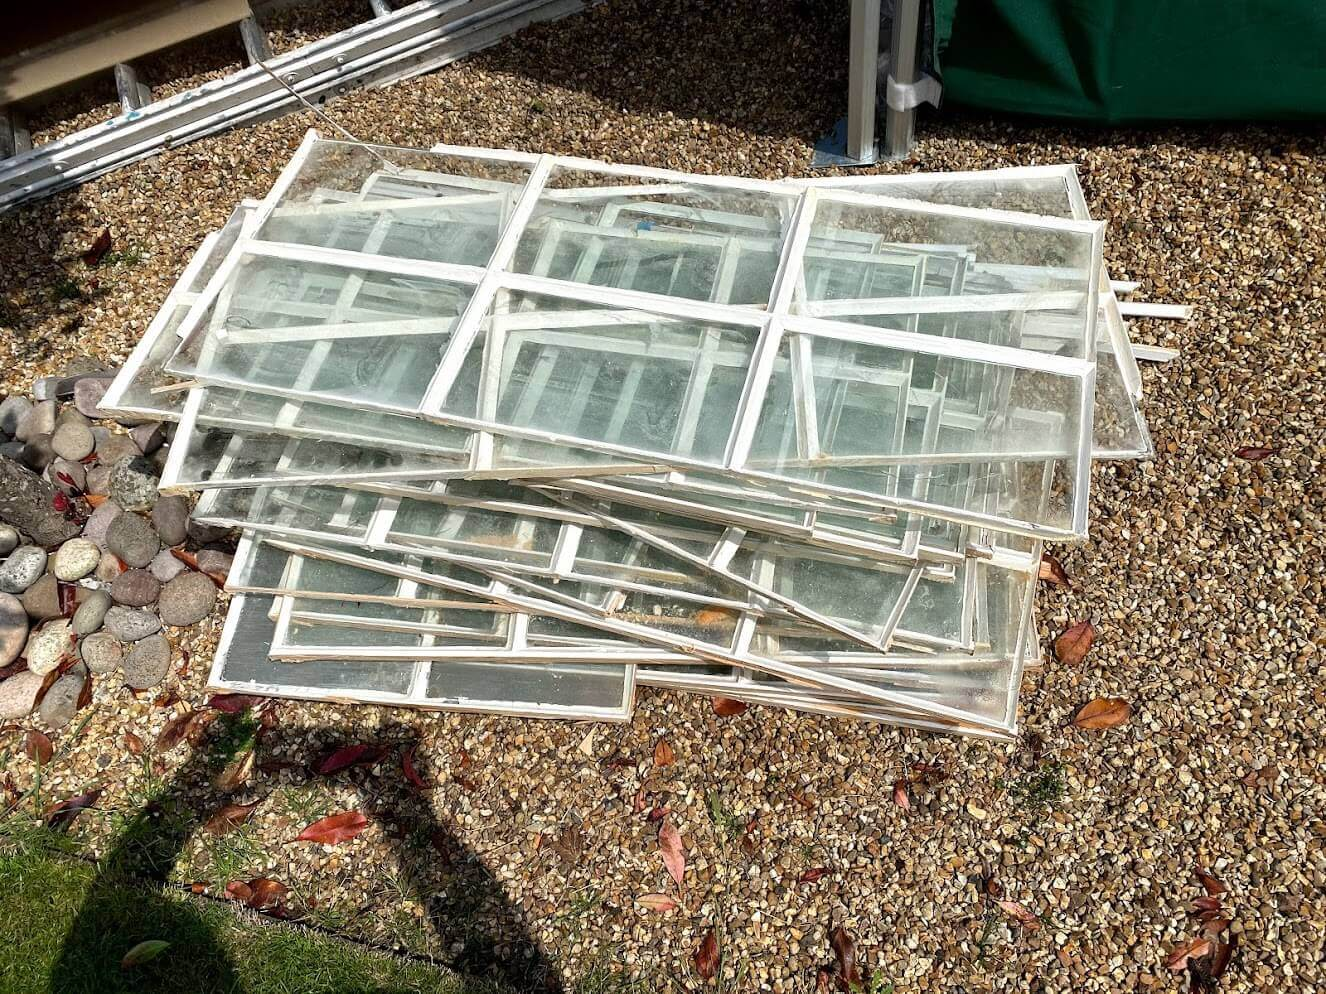 How to dispose of glass window panes